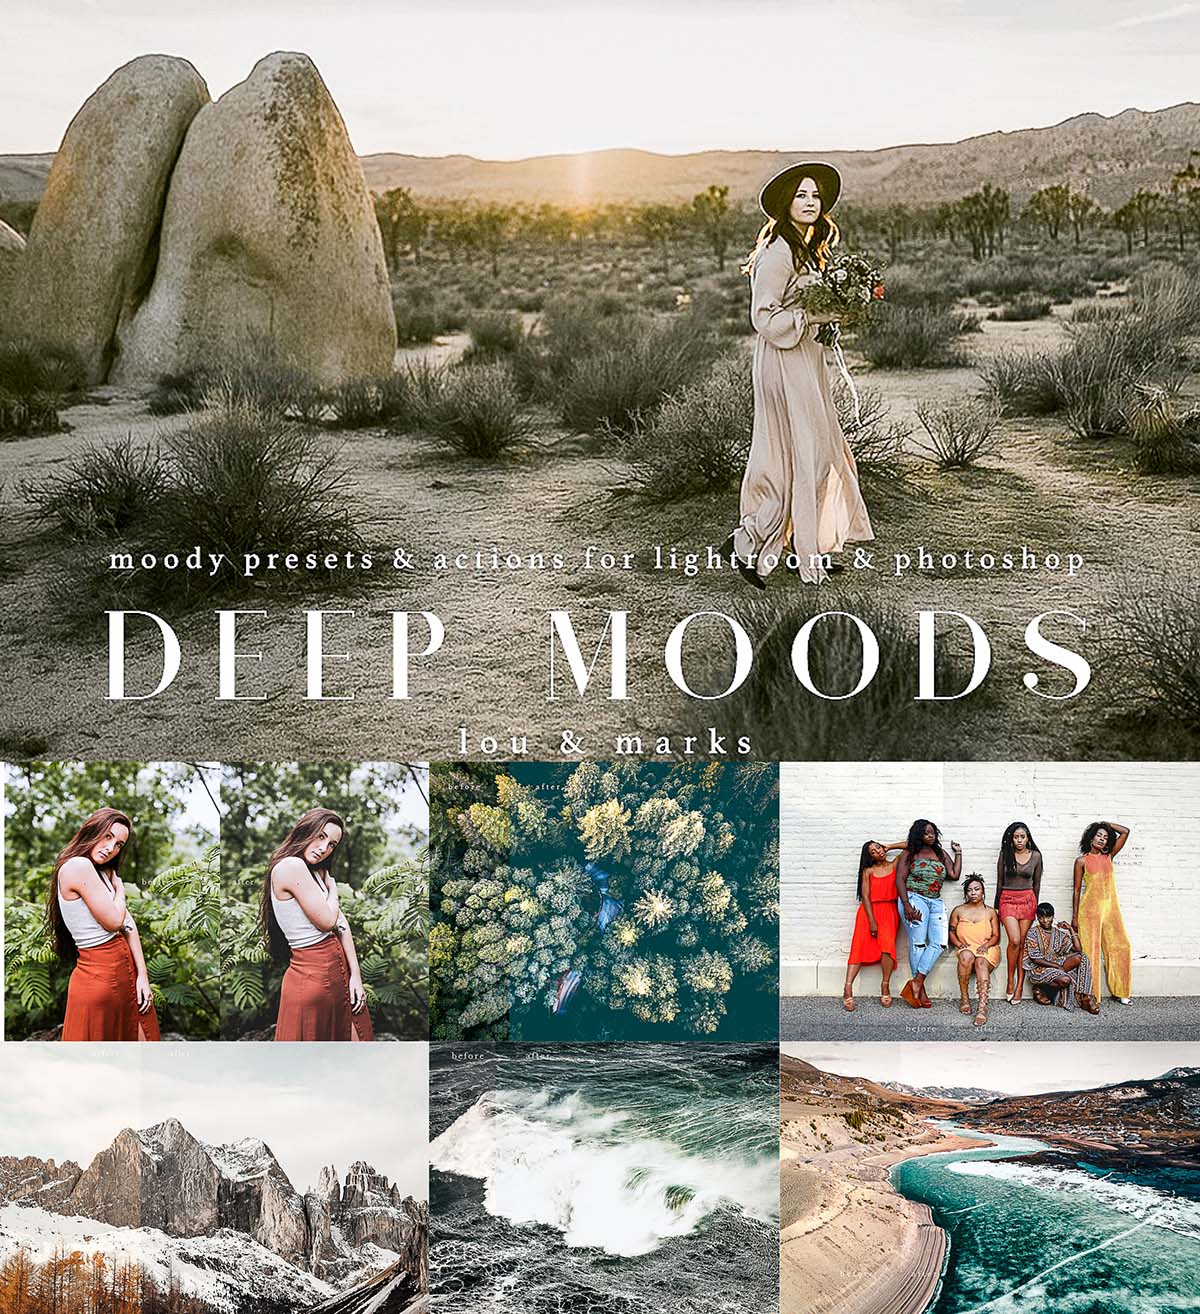 Deep moods presets and actions